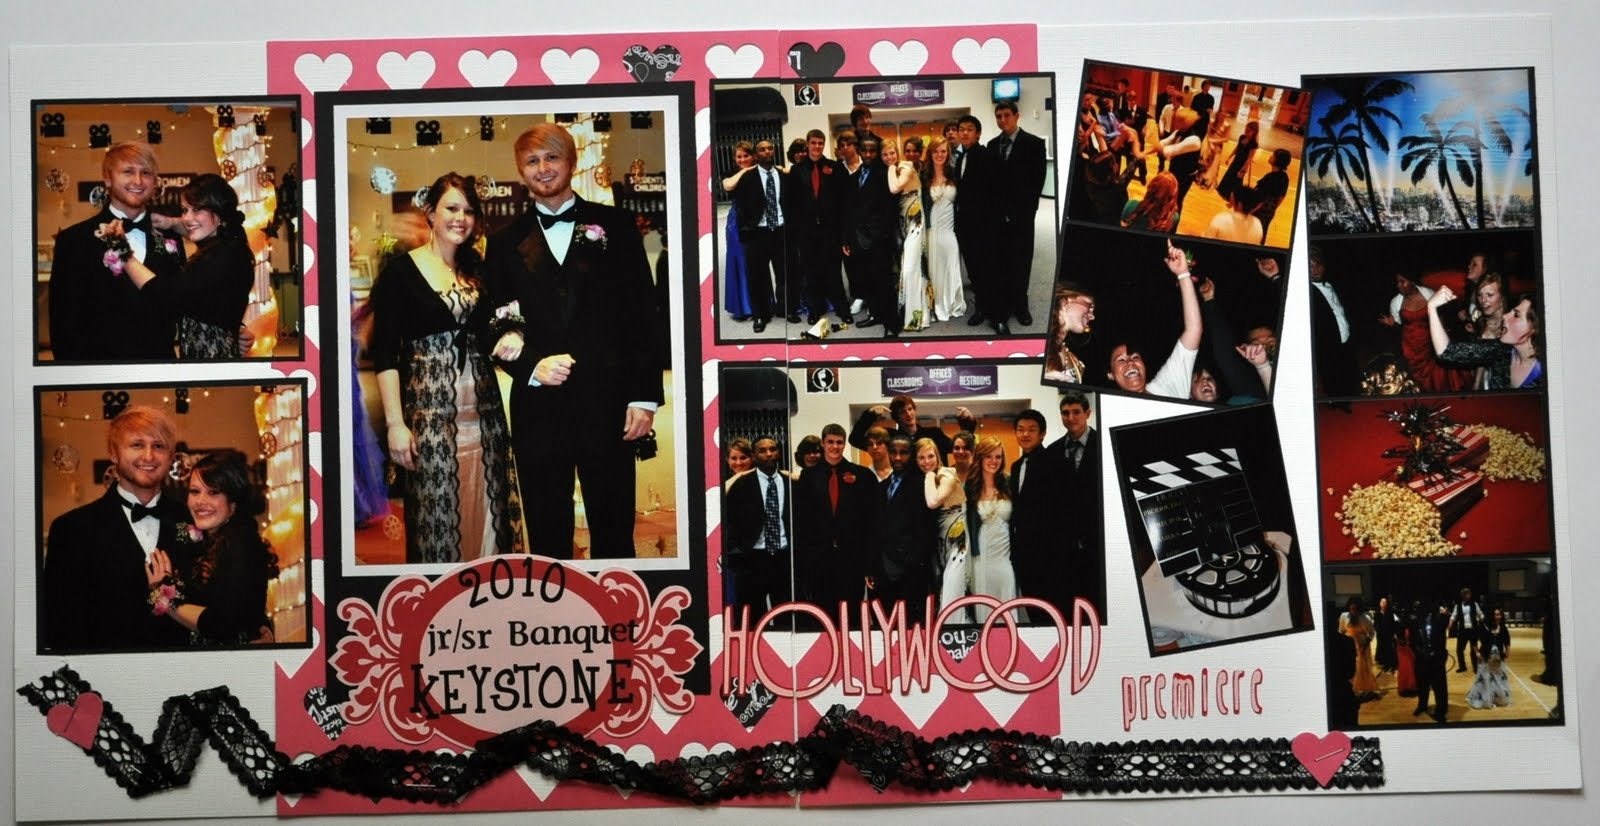 Scrapbook ideas without photos - I Used A Full Page Diecut With Hearts Cut Out And Filled Some Of The Negative Heart Spaces With Black And White Patterned Paper